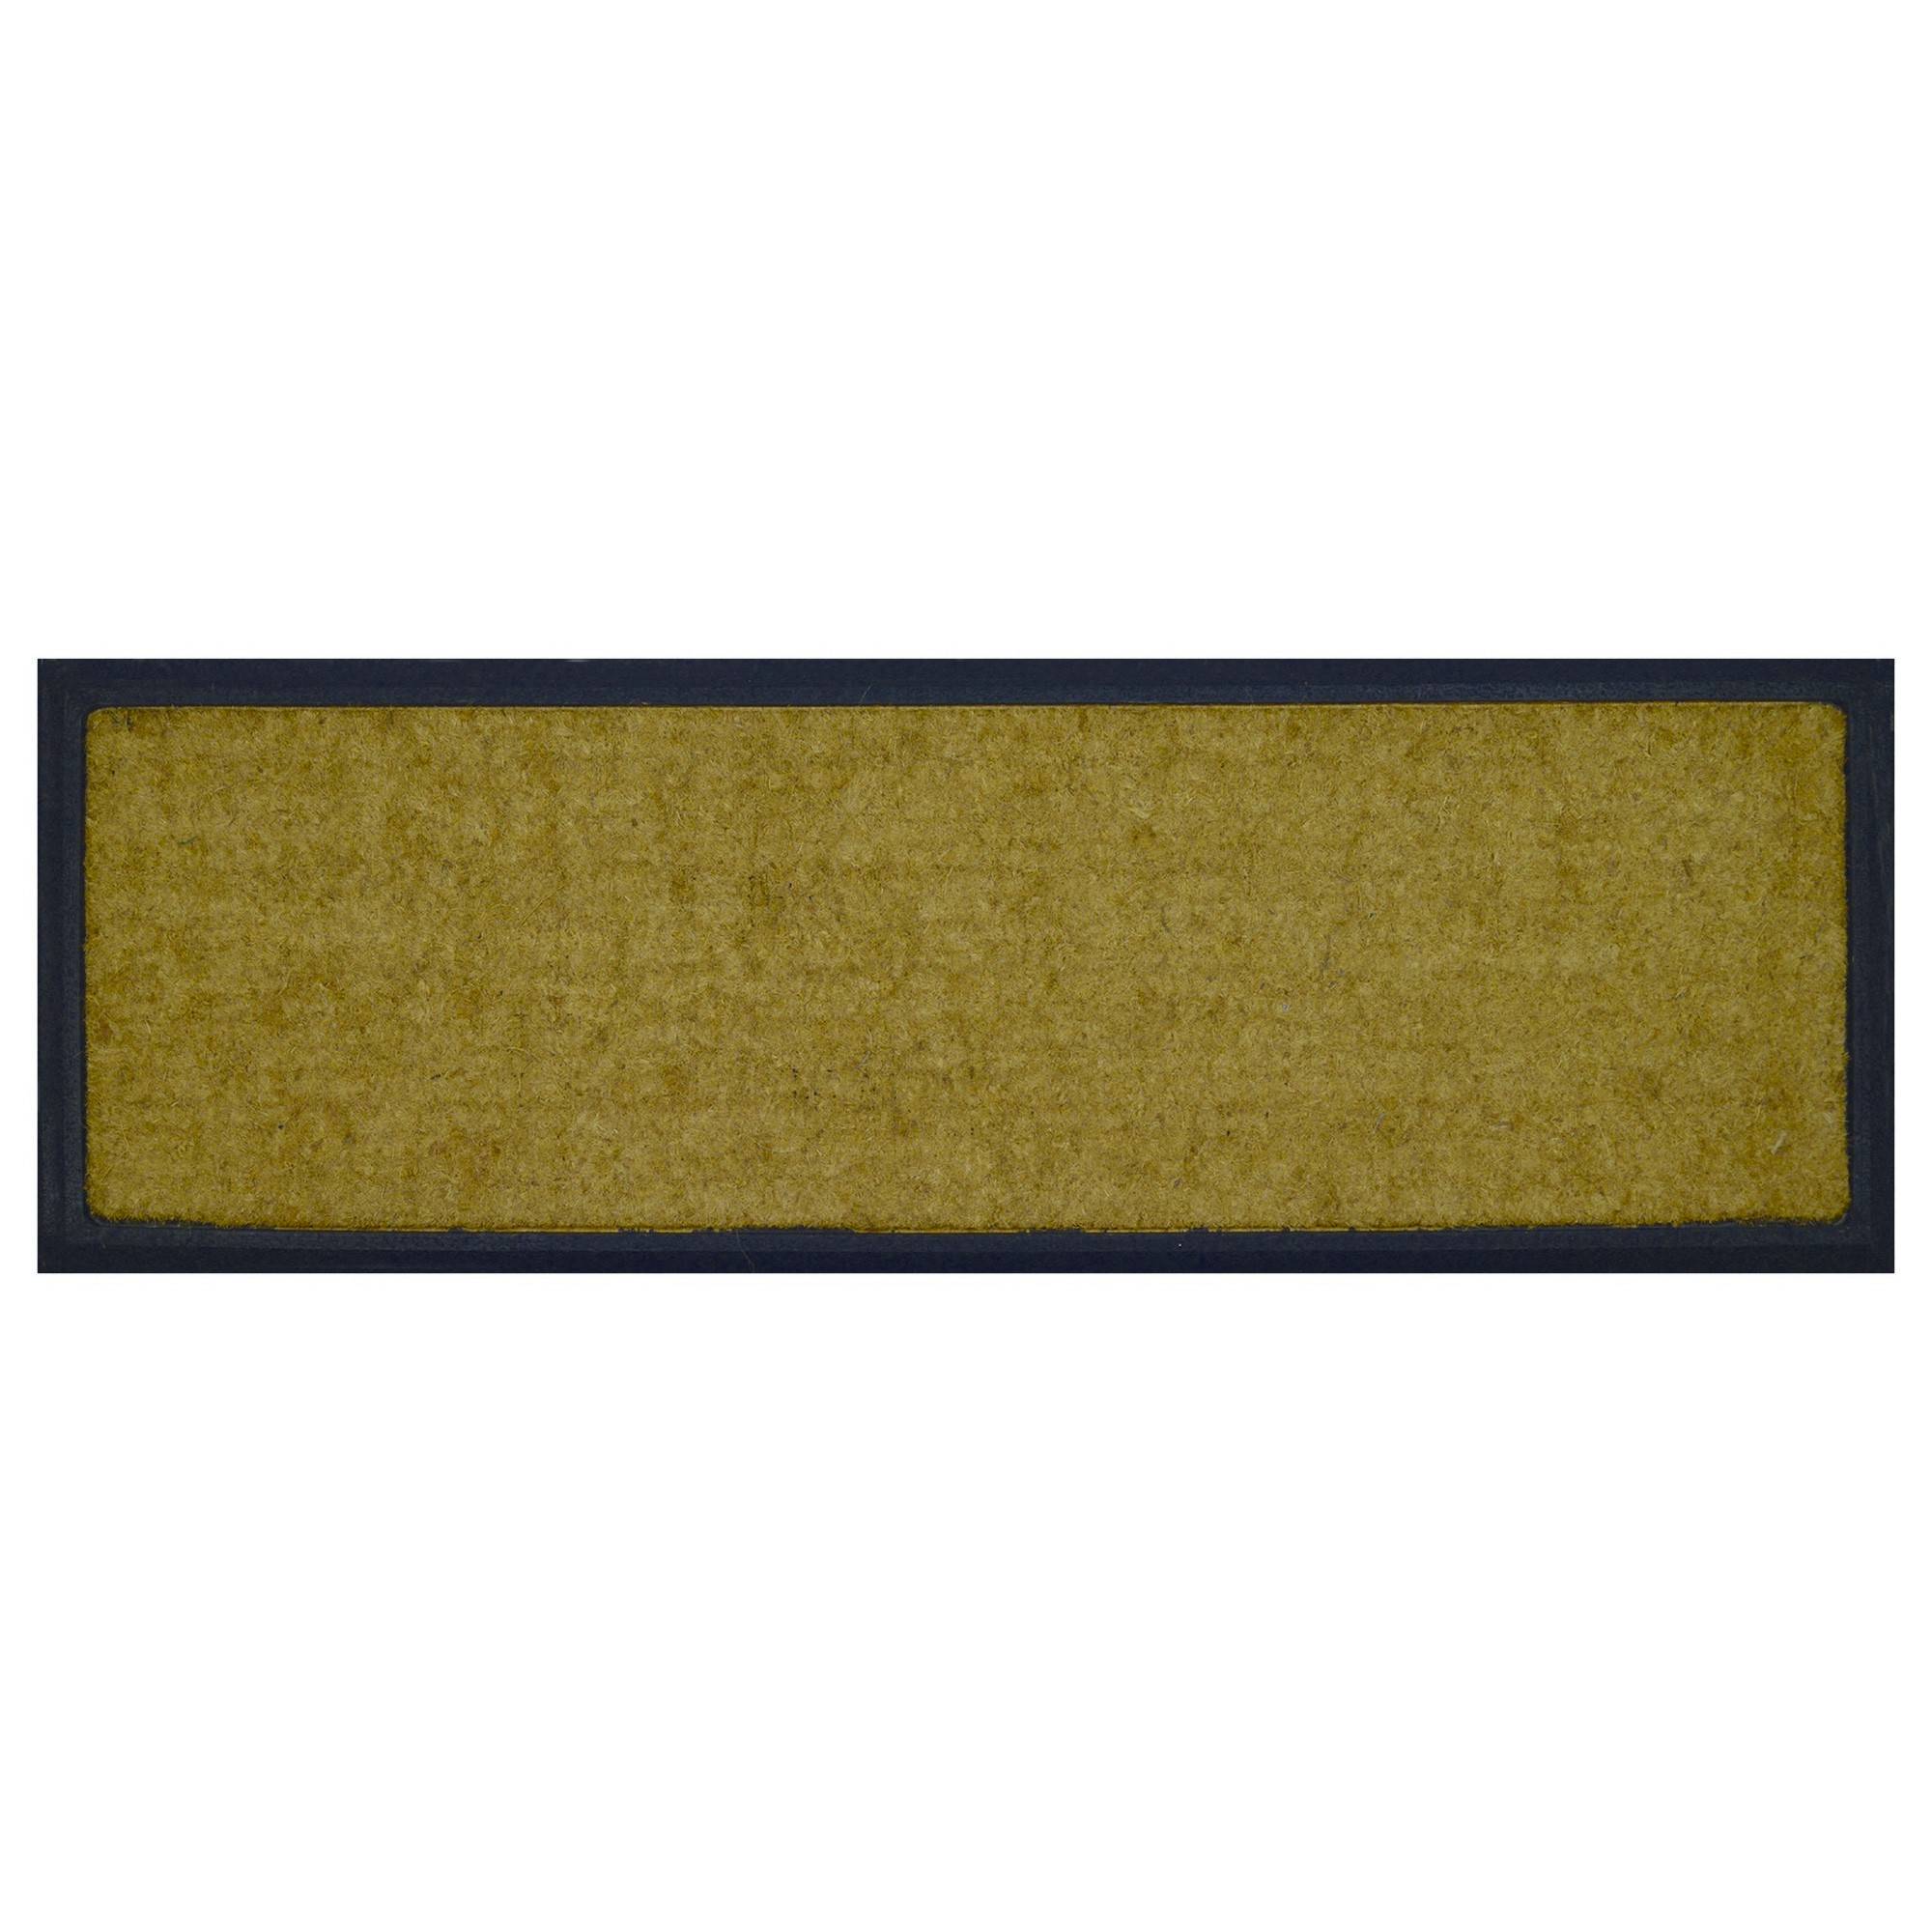 Barber Rubber Edged Coir Doormat, 120x40cm